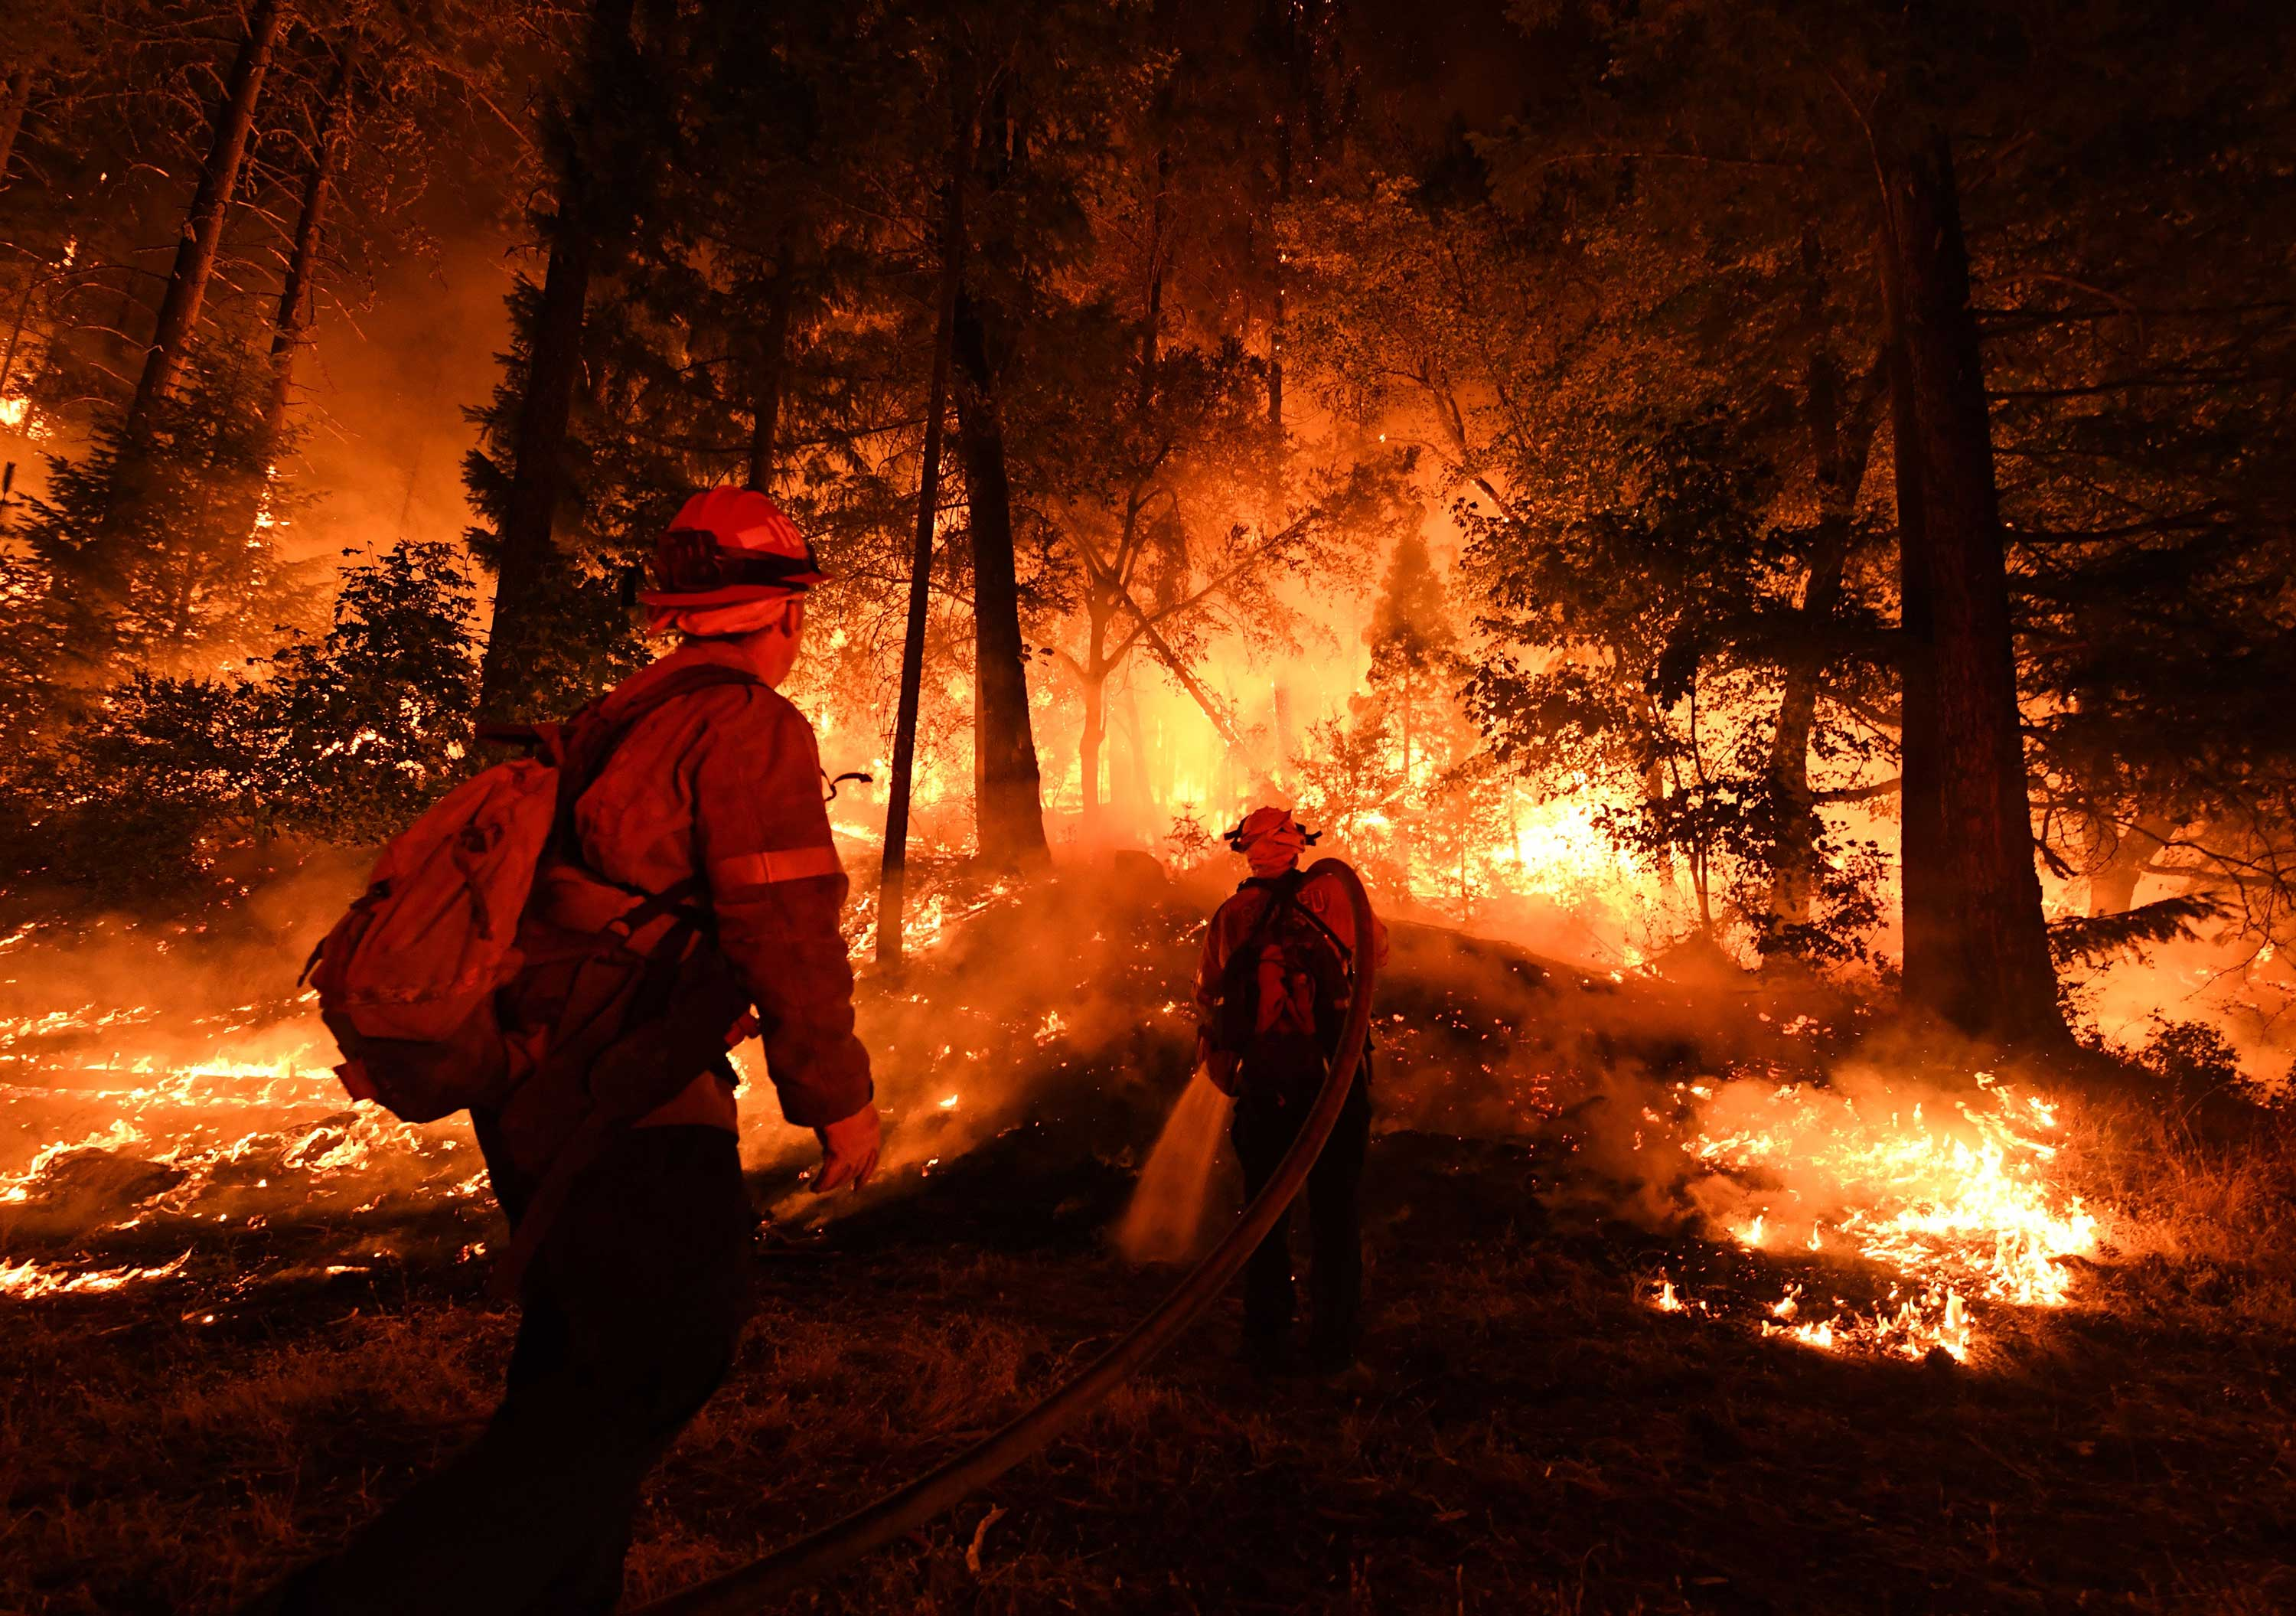 <div class='meta'><div class='origin-logo' data-origin='none'></div><span class='caption-text' data-credit='MARK RALSTON/AFP/Getty Images'>Firefighters try to control a back burn as the Carr fire continues to spread towards the towns of Douglas City and Lewiston near Redding, California on July 31, 2018.</span></div>